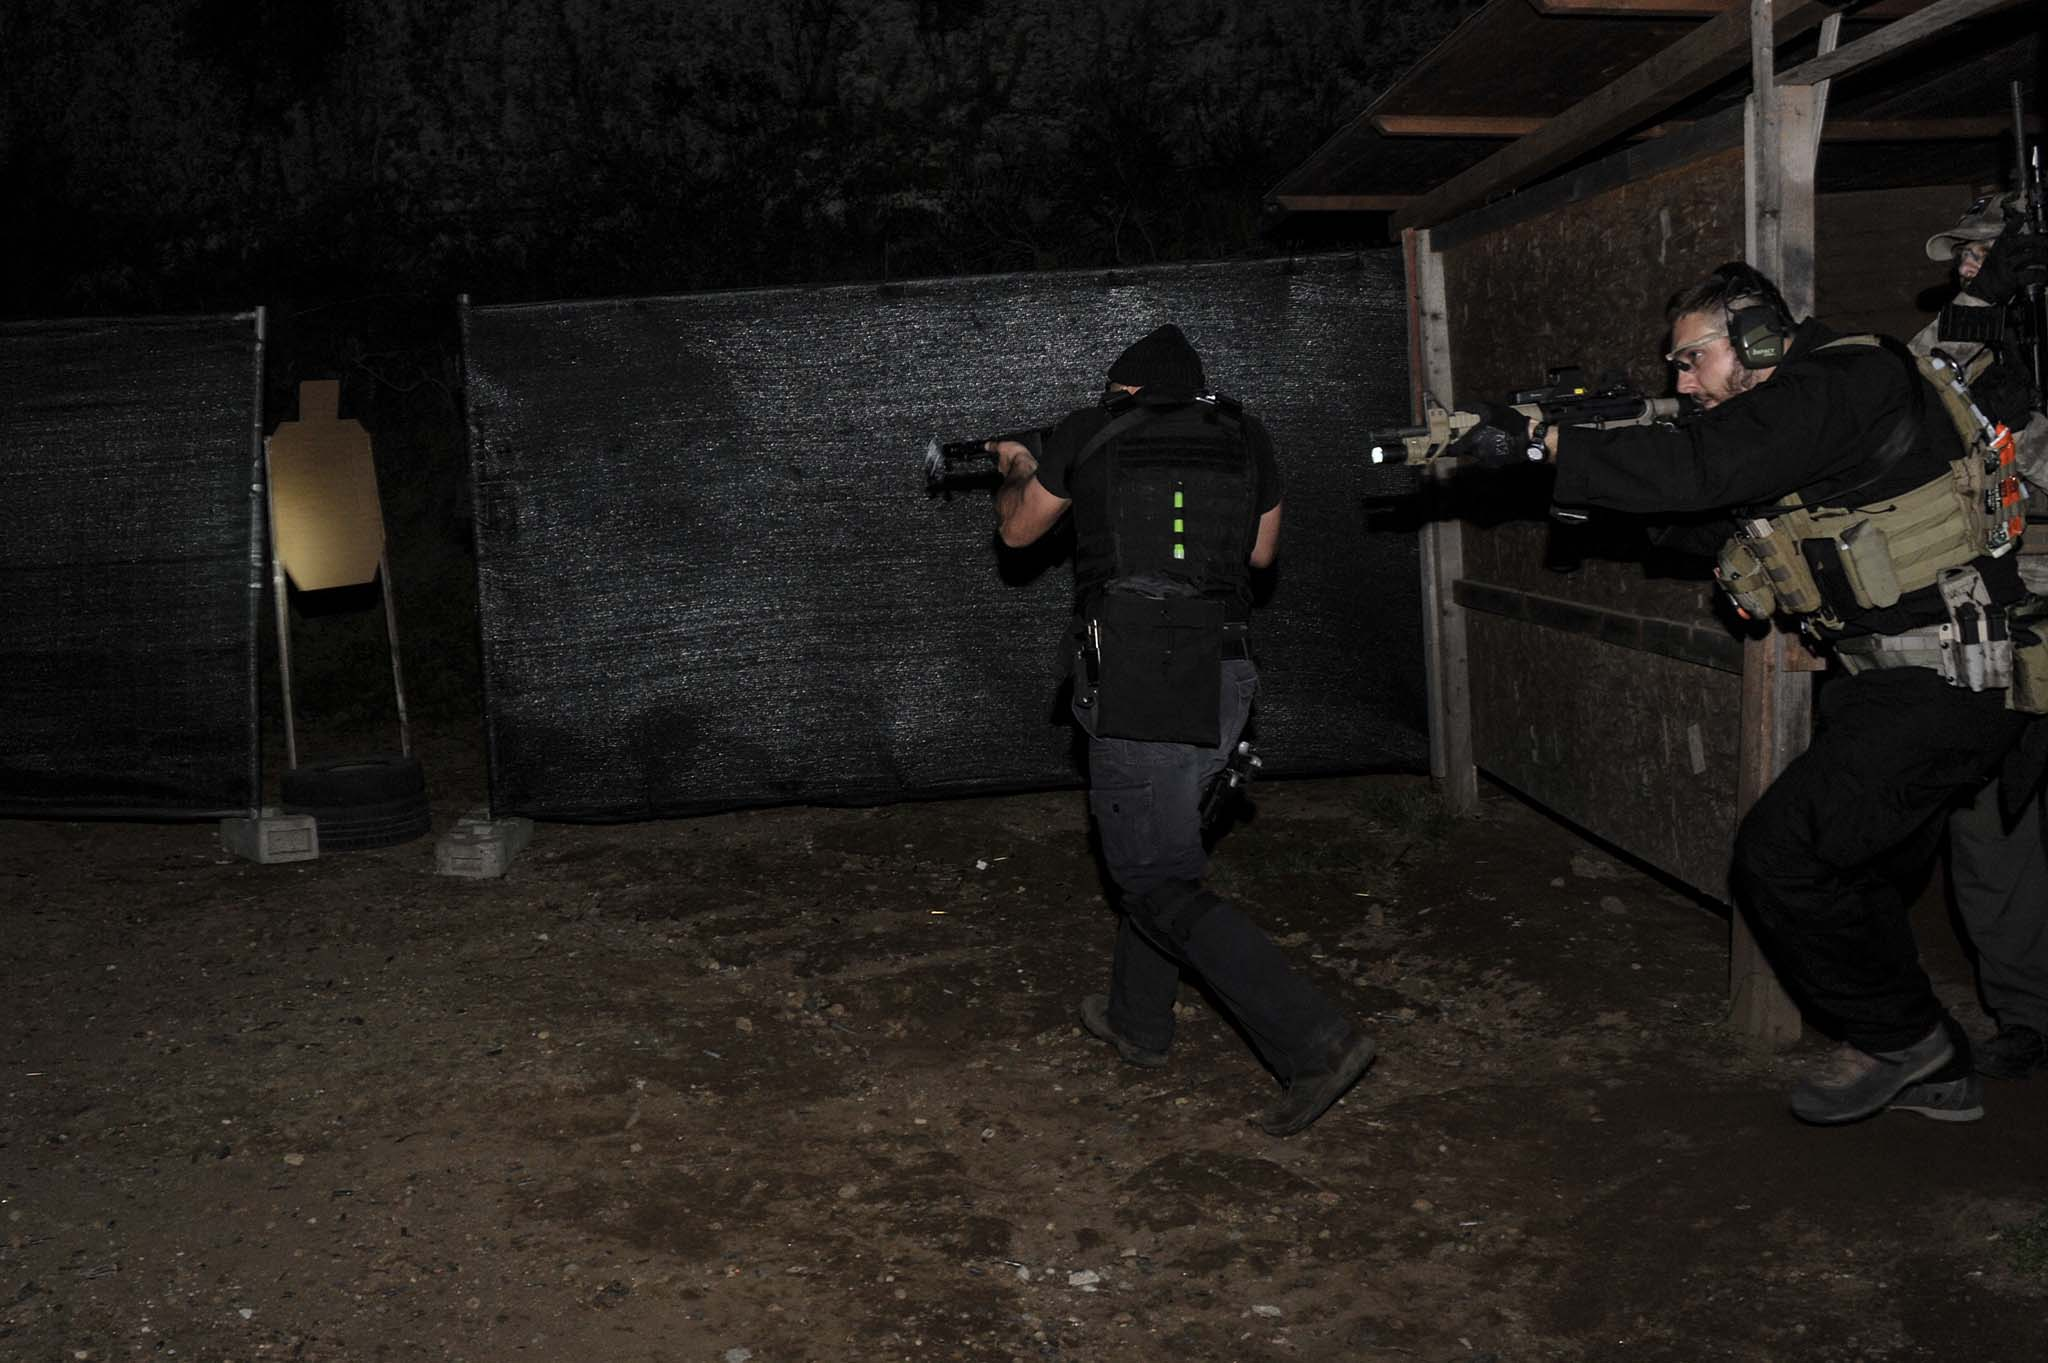 Shooters during night training